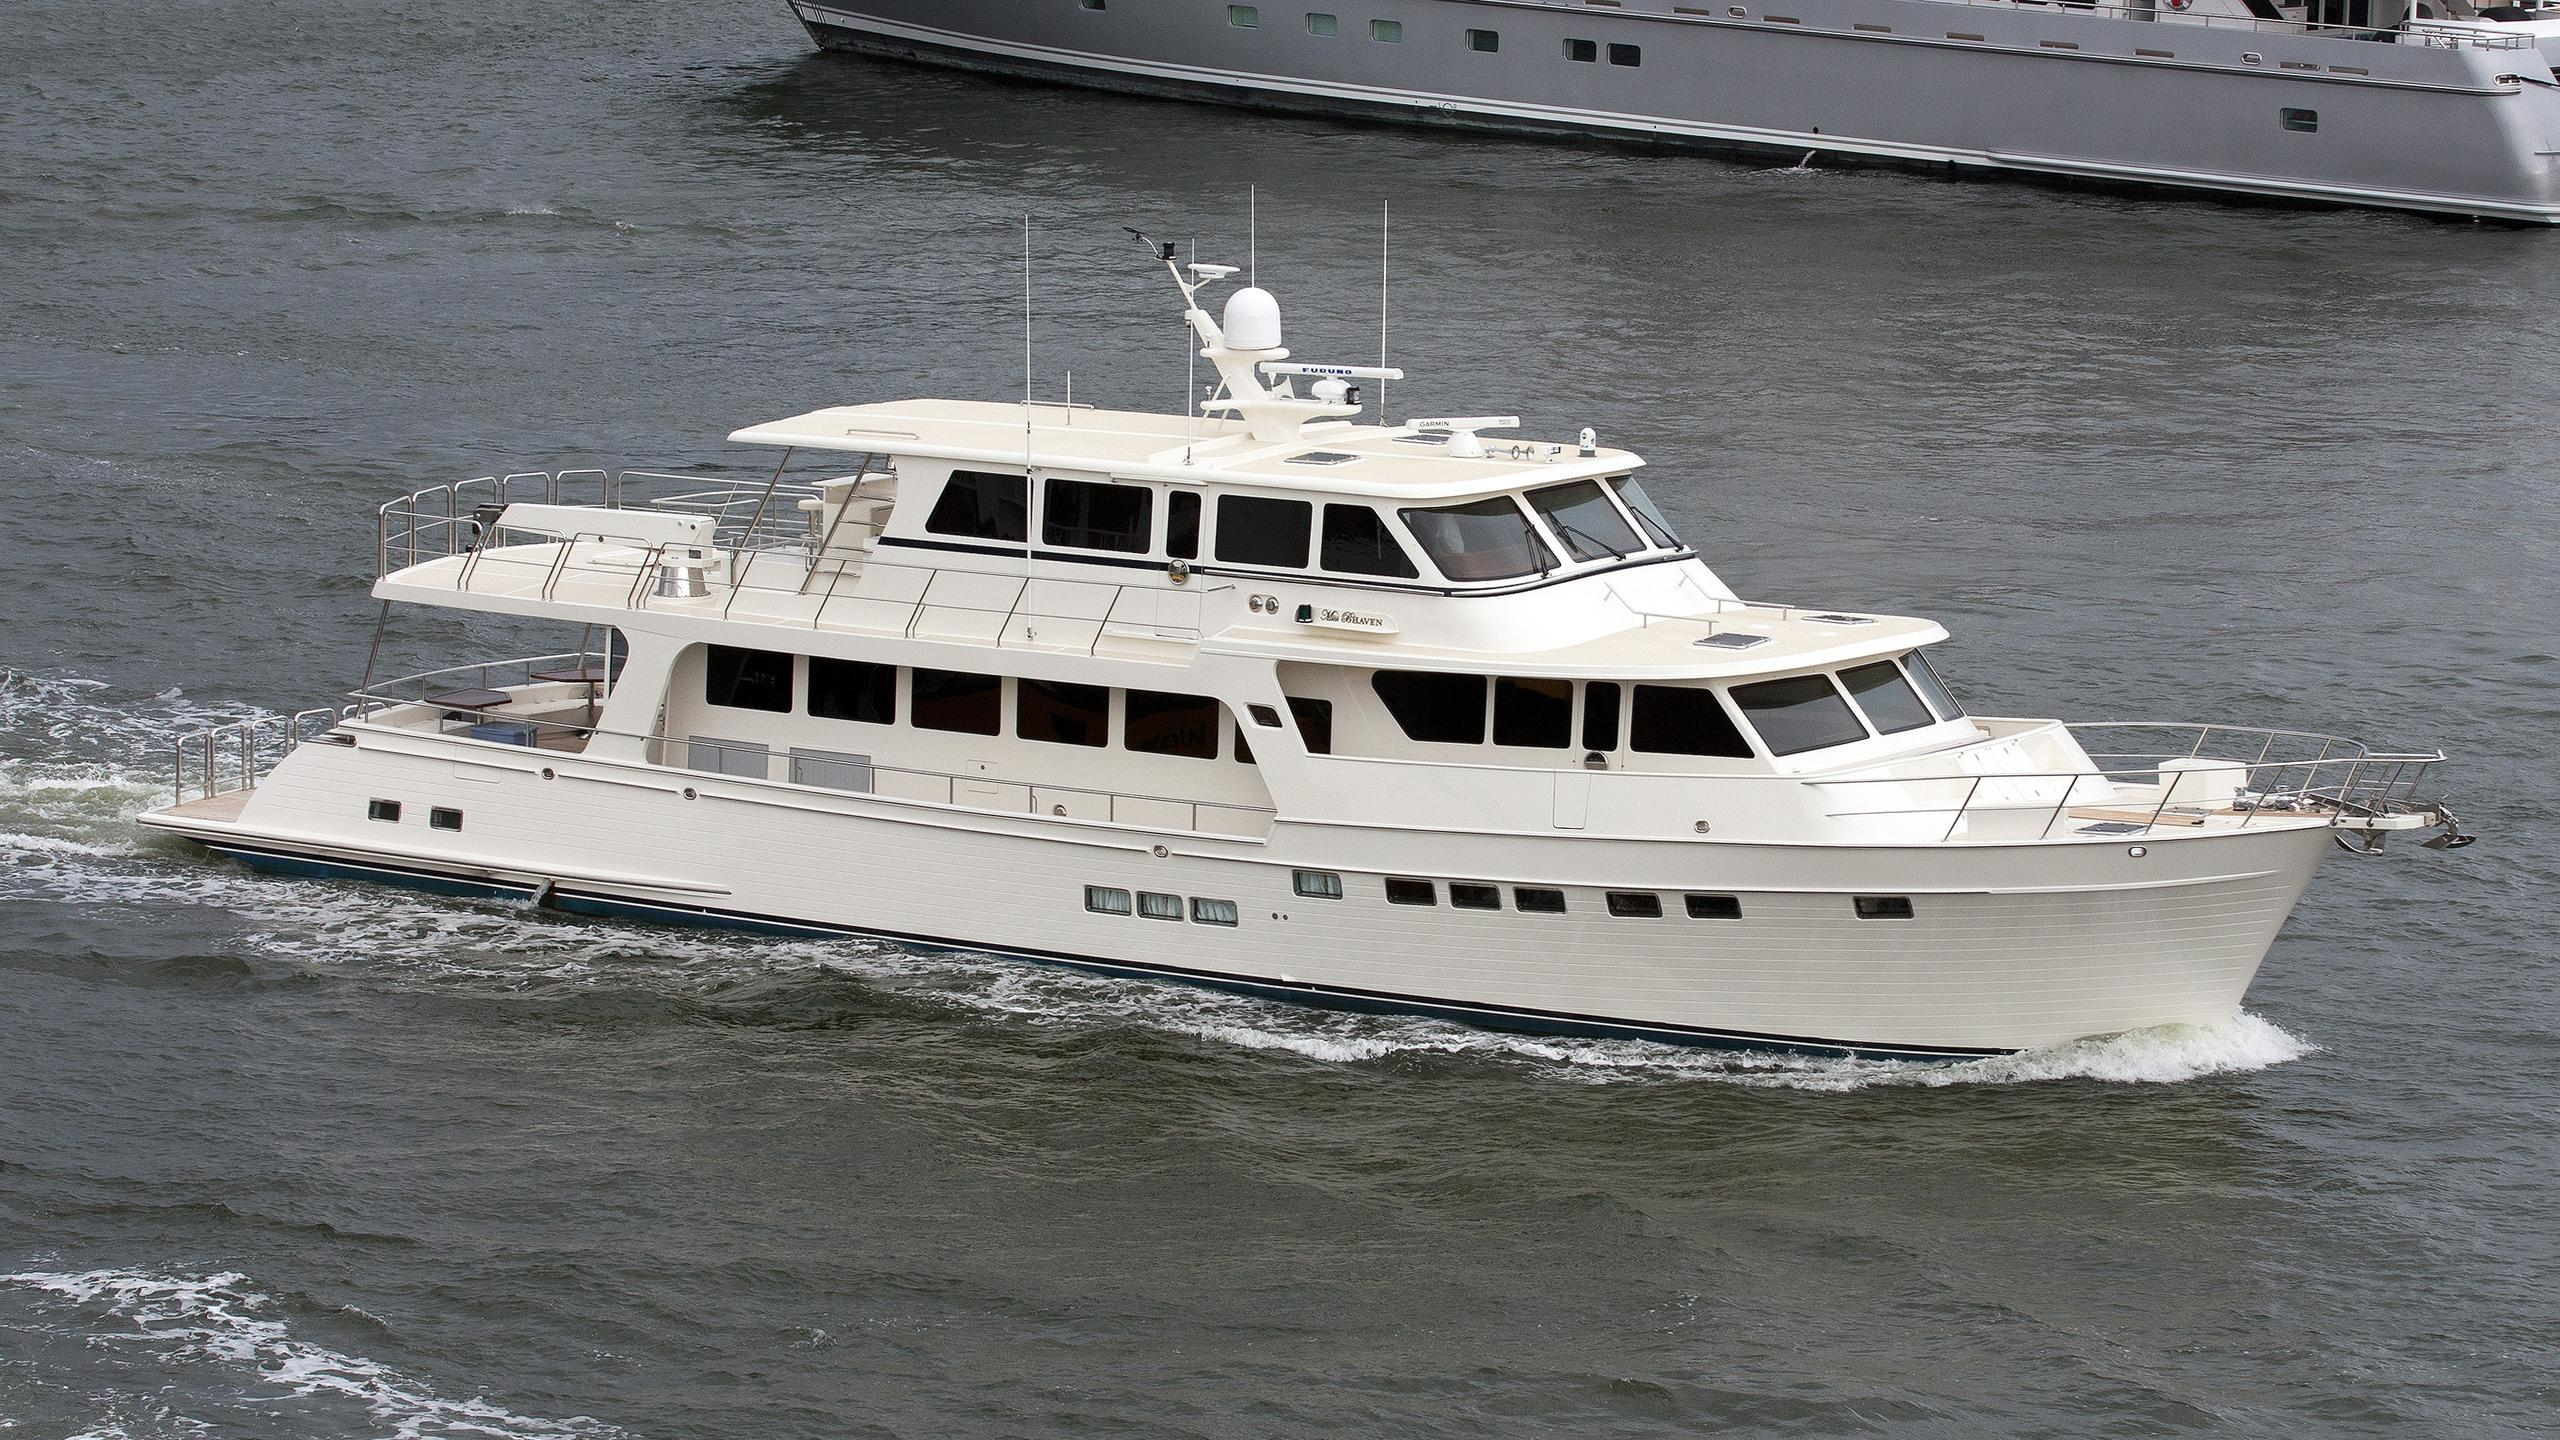 miss b haven motoryacht marlow 97 30m 2014 half profile